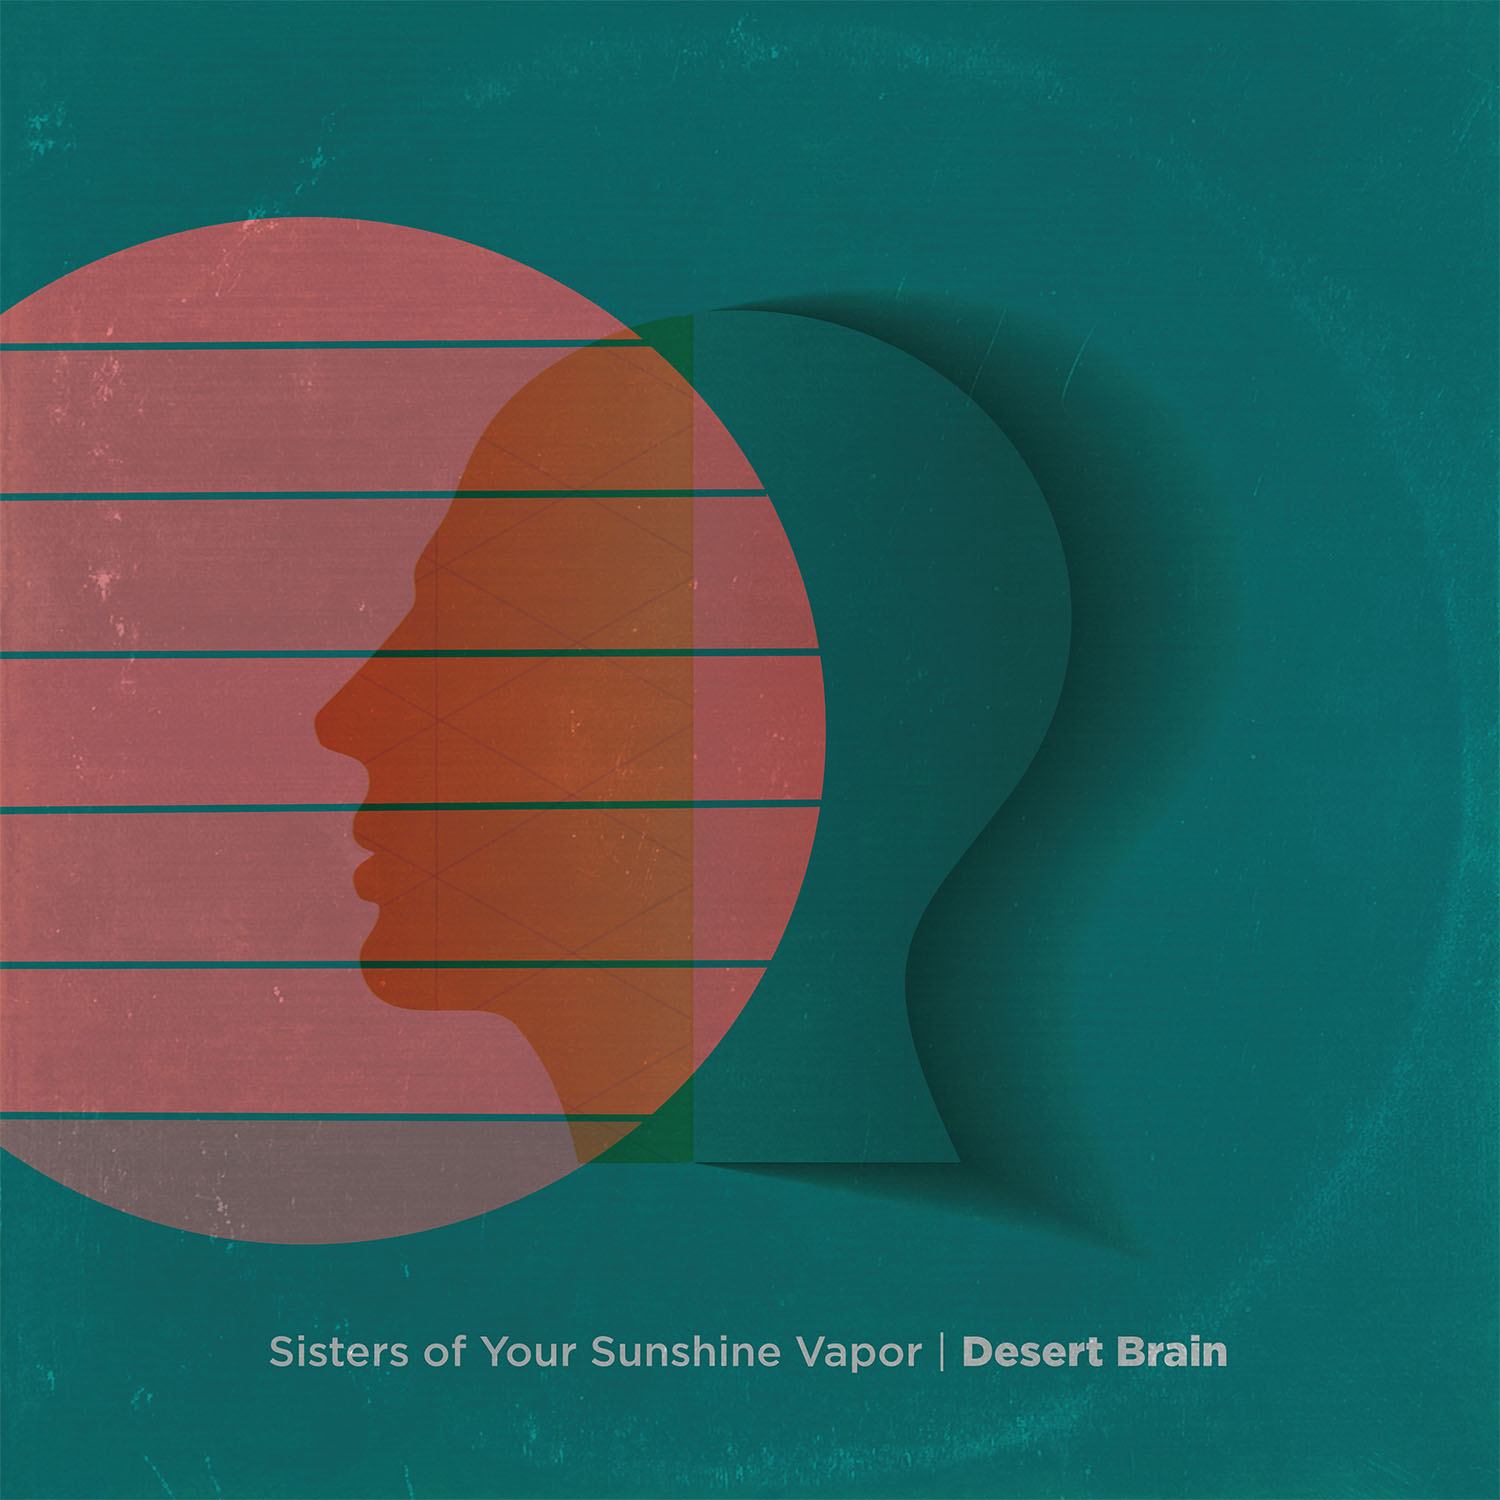 sisters of your sunshine vapor desert brain